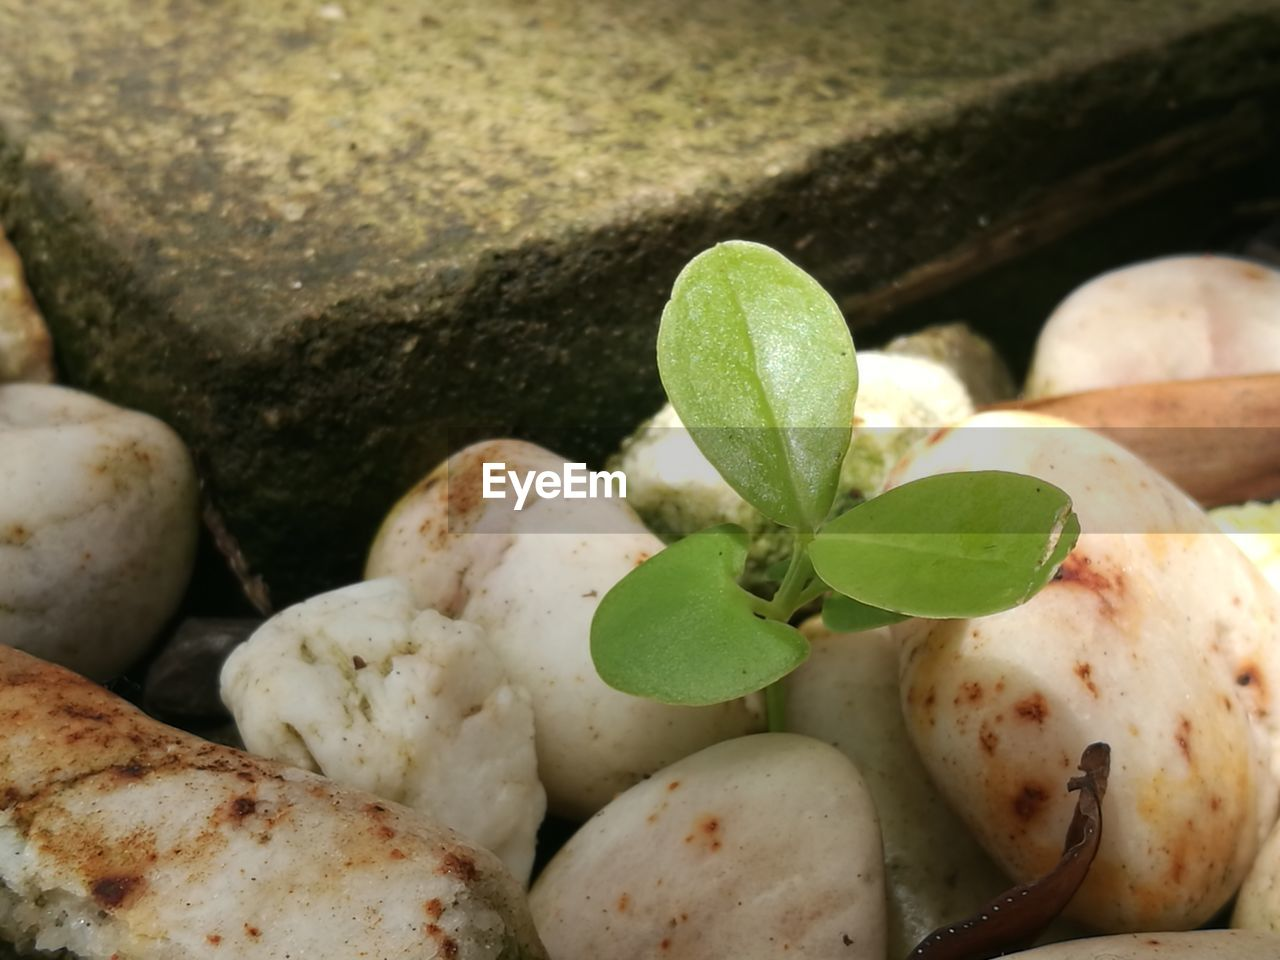 leaf, plant part, close-up, no people, green color, nature, solid, food and drink, freshness, plant, food, rock, day, growth, selective focus, stone - object, still life, high angle view, healthy eating, wellbeing, pebble